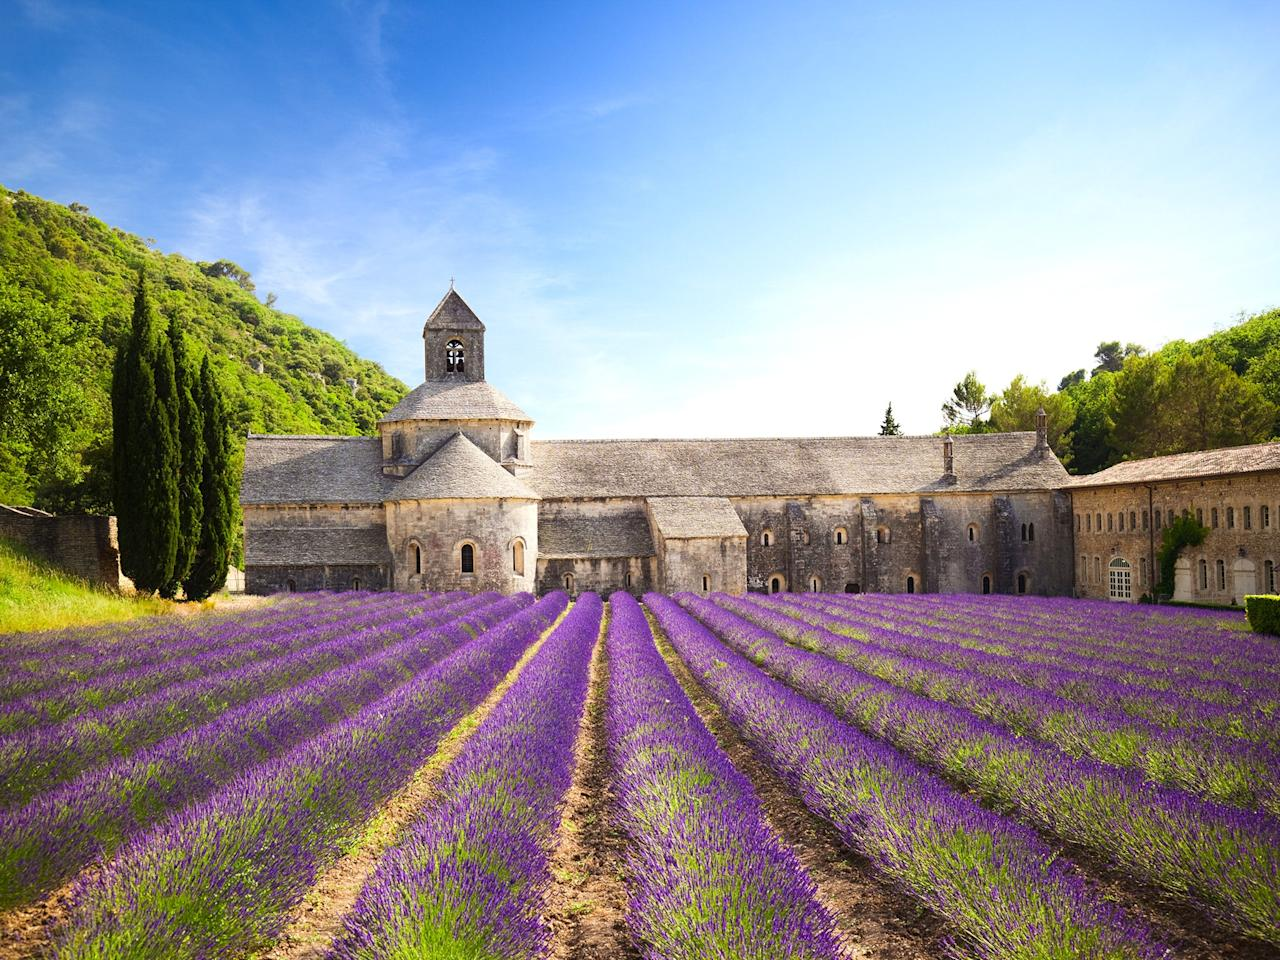 """The seemingly endless <a href=""""https://www.cntraveler.com/gallery/where-to-go-for-frances-most-spectacular-lavender-fields-castles-and-mountains?mbid=synd_yahoo_rss"""" target=""""_blank"""">stretches of lavender</a> make Provence one of the prettiest (and best-smelling) places in France. One of the most scenic spots to enjoy the flower fields is Sénanque Abbey, a 12th-century church near the village of Gordes. The gentle heather-gray color of the abbey looks custom-made for its surroundings, particularly in June and July when the acres around it bloom into a sea of purple."""